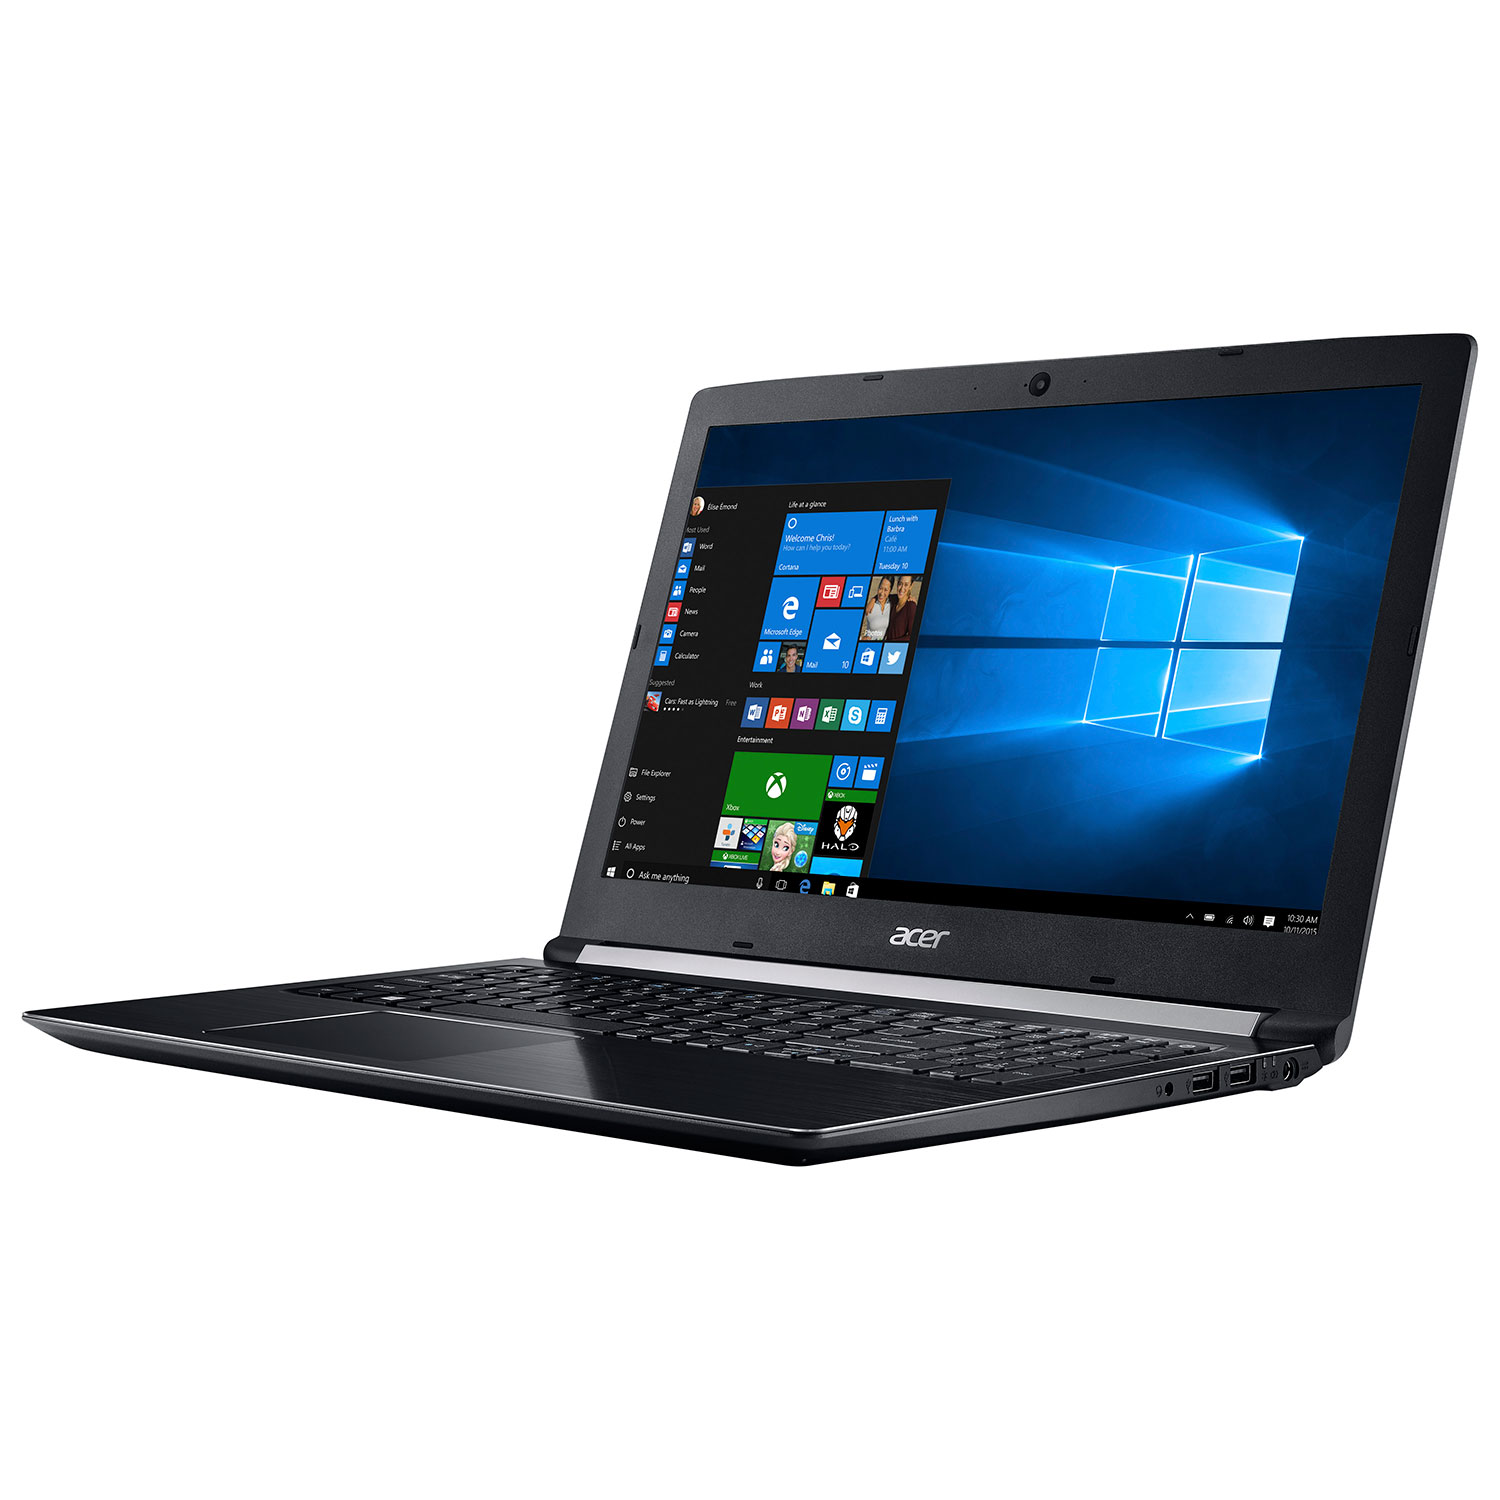 Acer Aspire 5 156 Laptop Black Intel Core I5 8250u 256gb Ssd Parts Diagram 8gb Ram Windows 10 Laptops Best Buy Canada